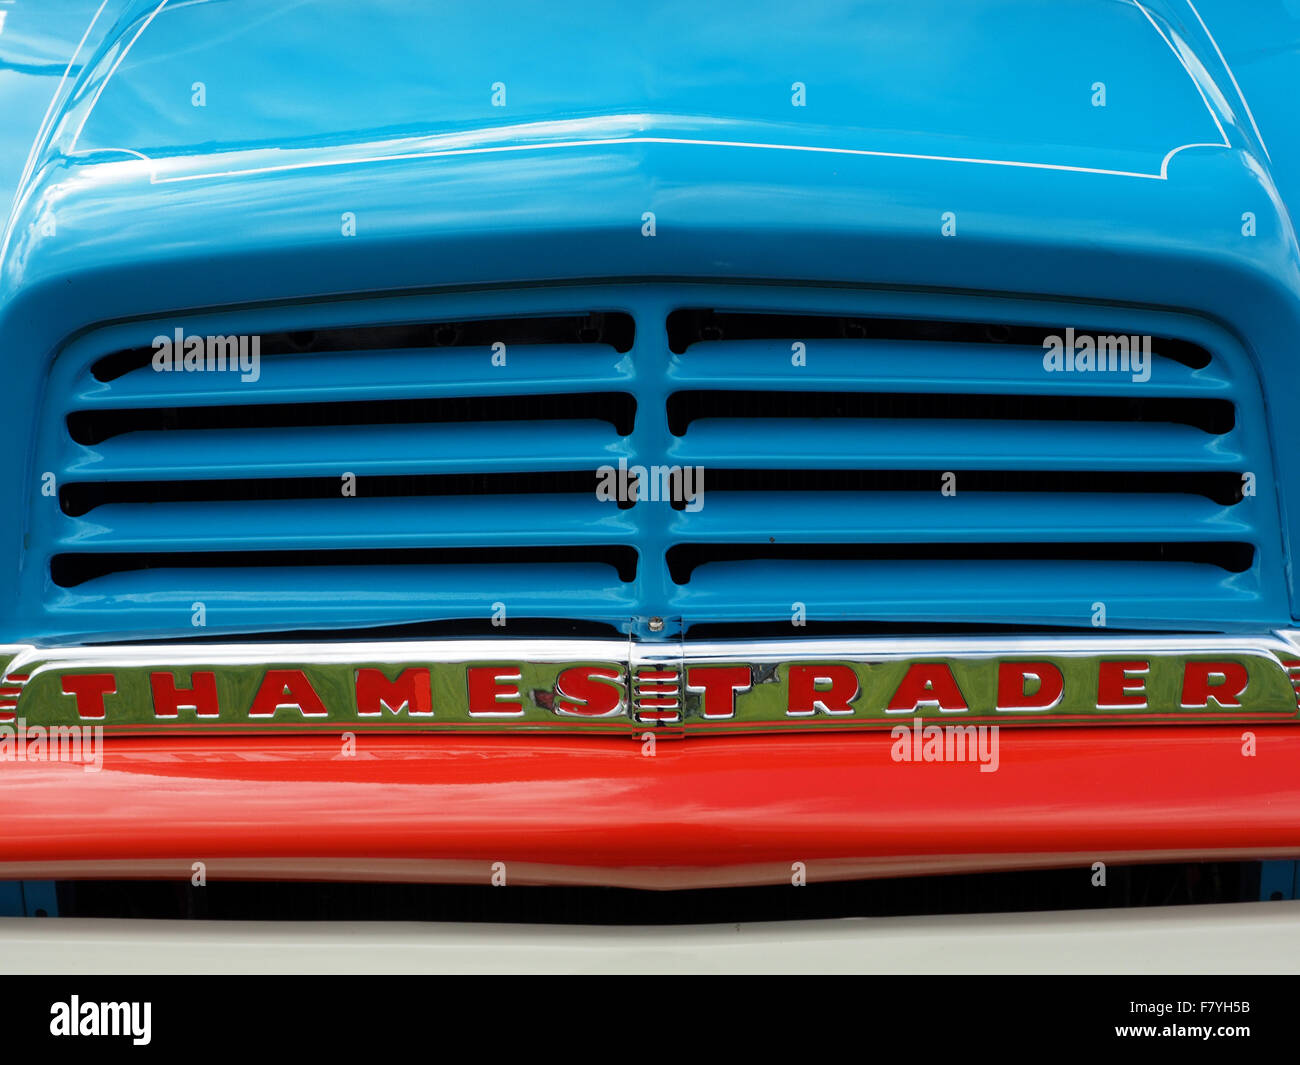 bright blue bonnet and grille of classic Thames Trader wagon with ...